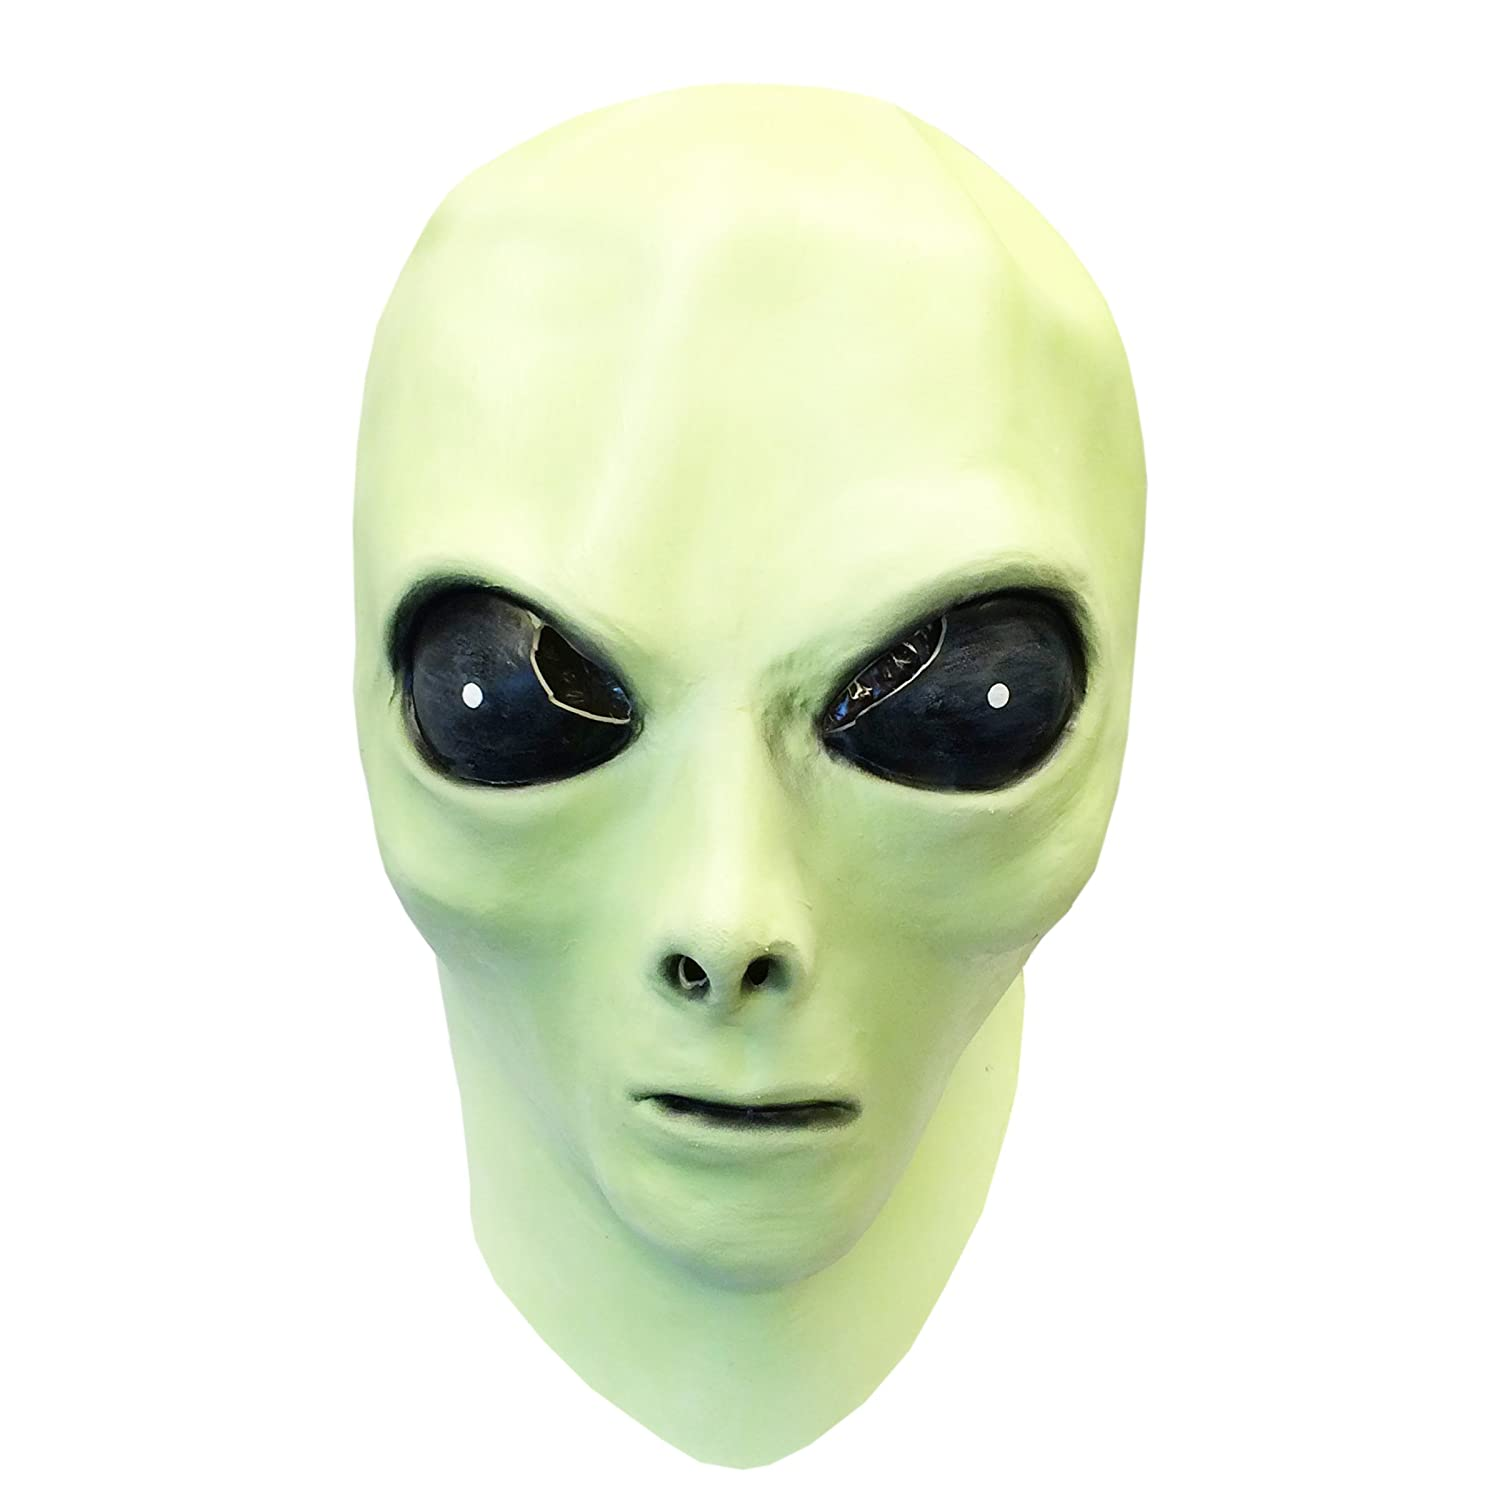 Amazon.com: Glow in the Dark Alien Face Mask with Alien Bendable Toy: Clothing